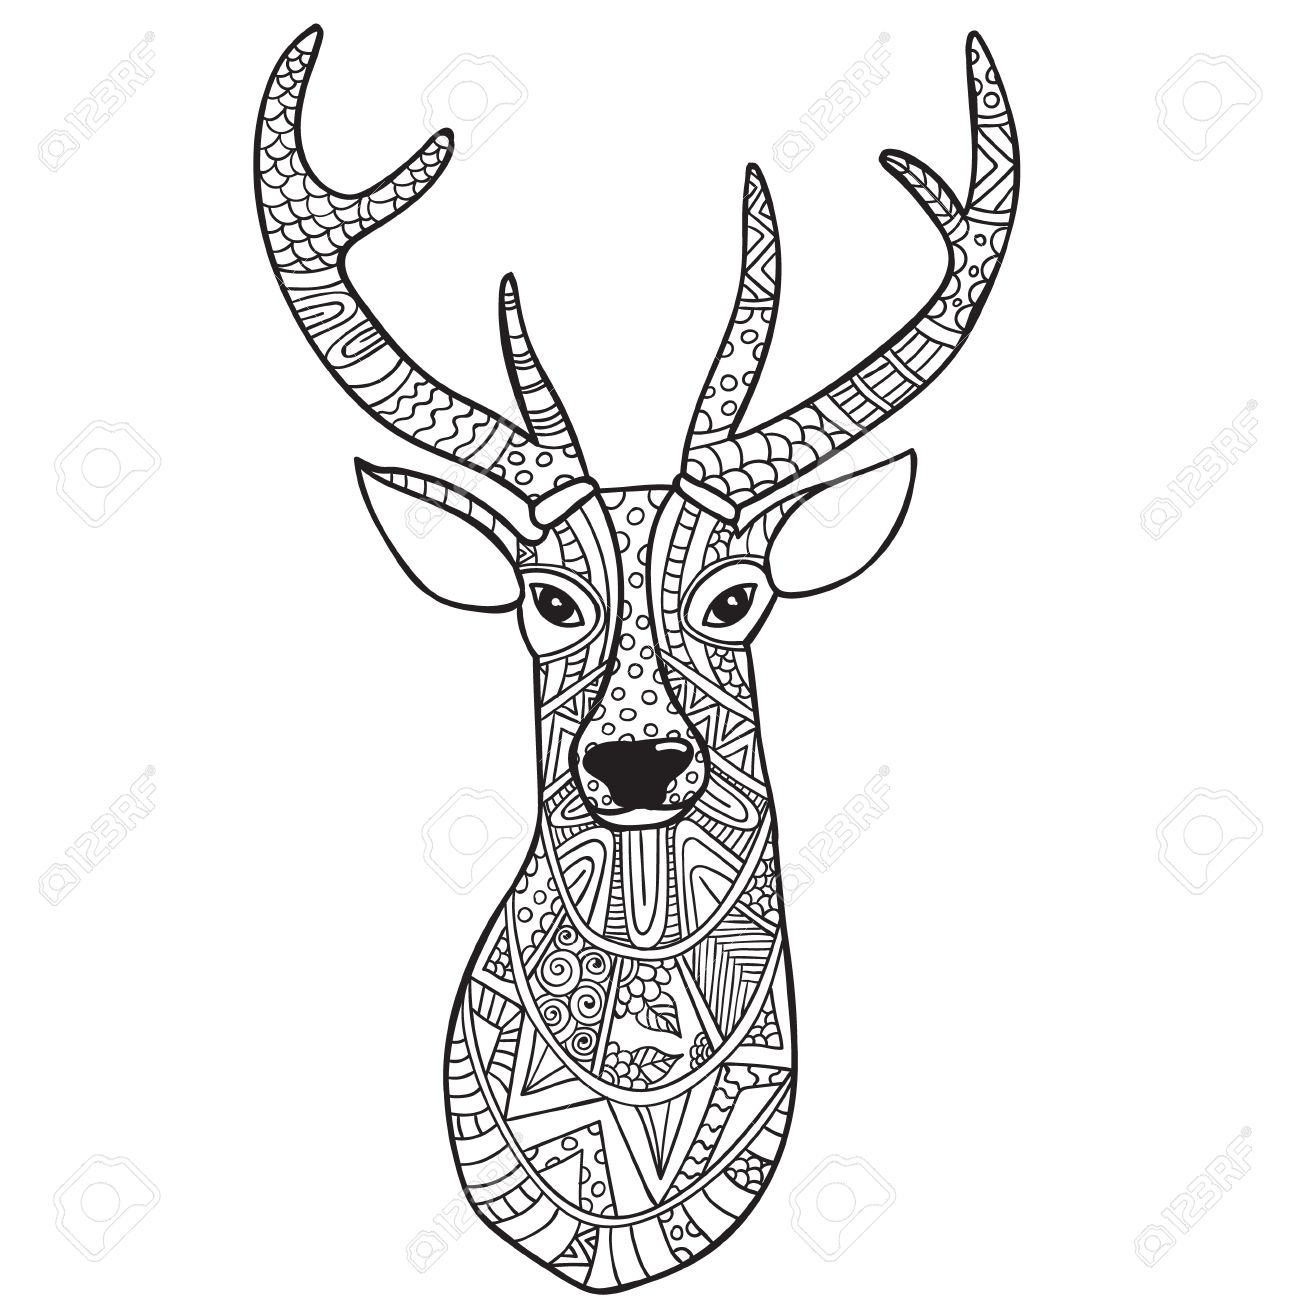 Deer. Hand-drawn Reindeer With Ethnic Doodle Pattern. Coloring ...